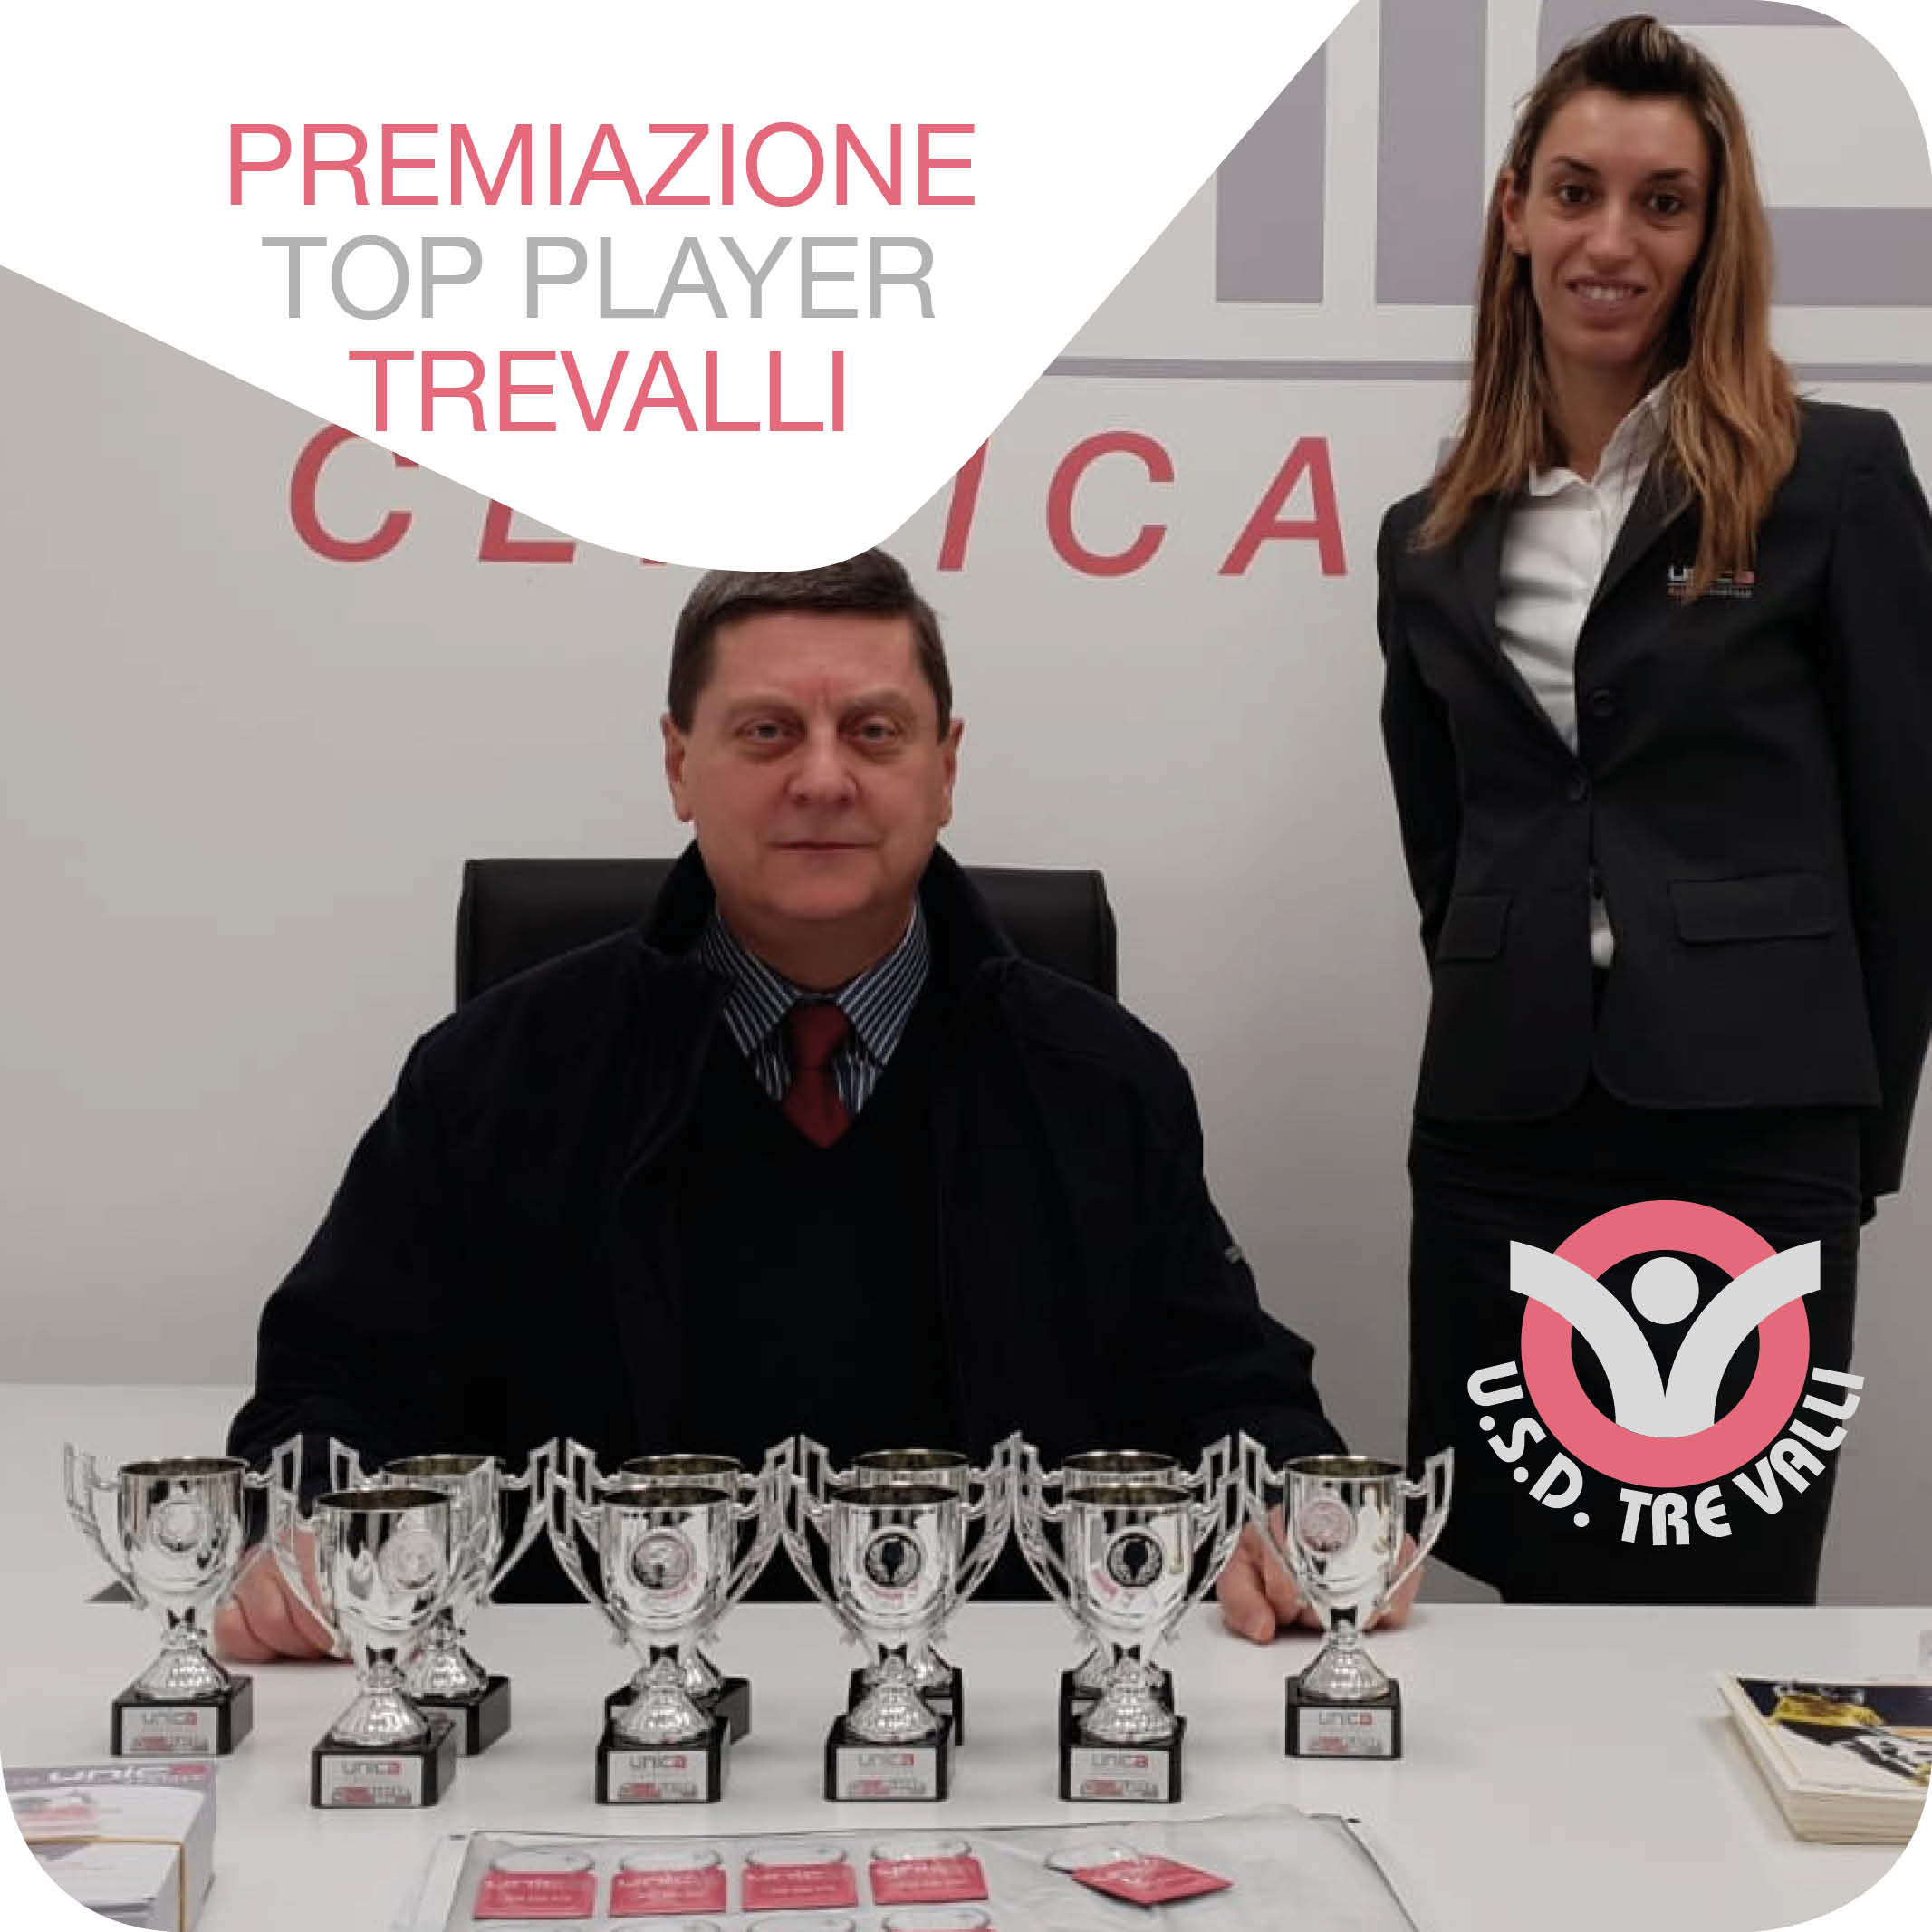 Premiazione Top Player Trevalli Unica Clinica Dentale